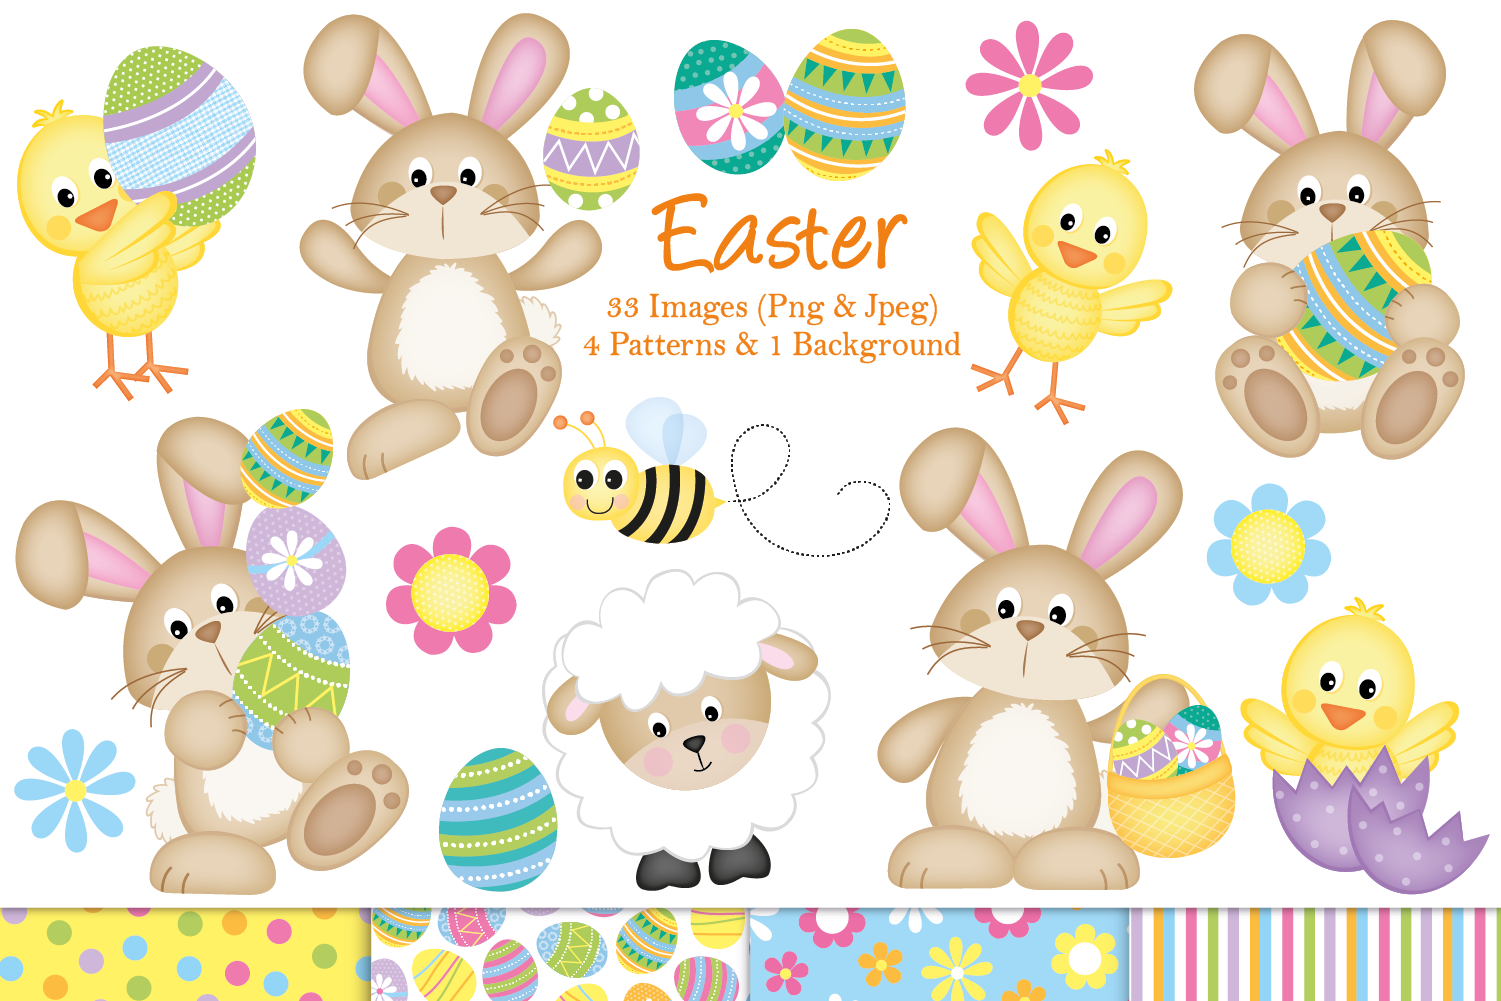 Easter clipart, Easter bunny graphics & illustrations ...